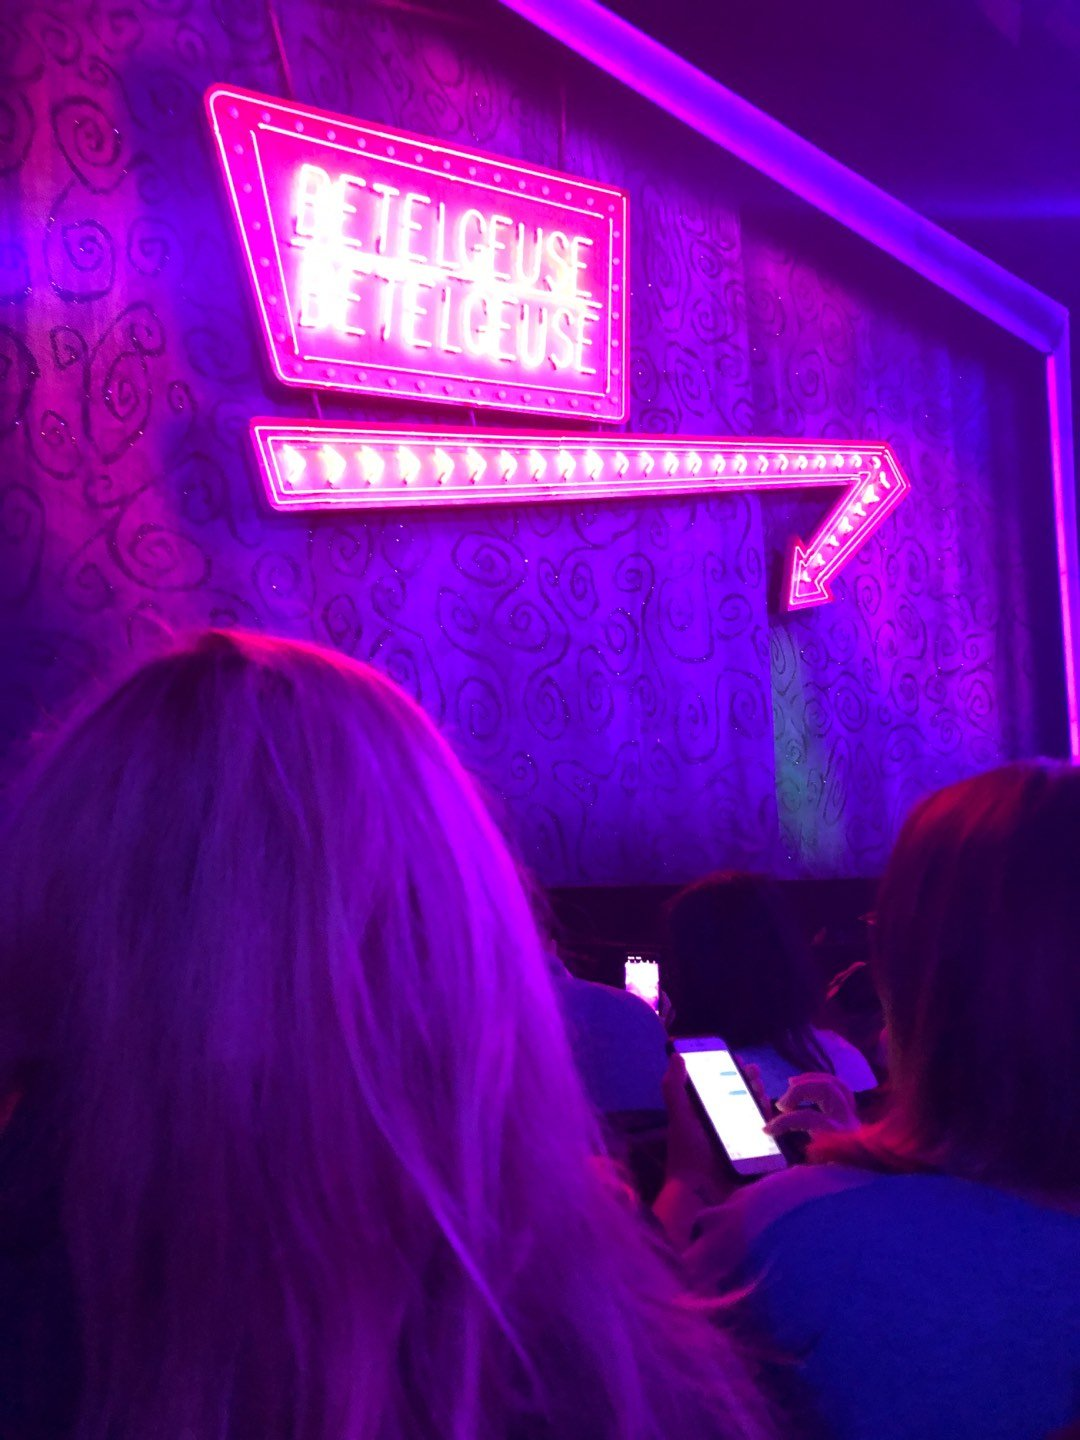 Winter Garden Theatre Section Orchestra L Row D Seat 7